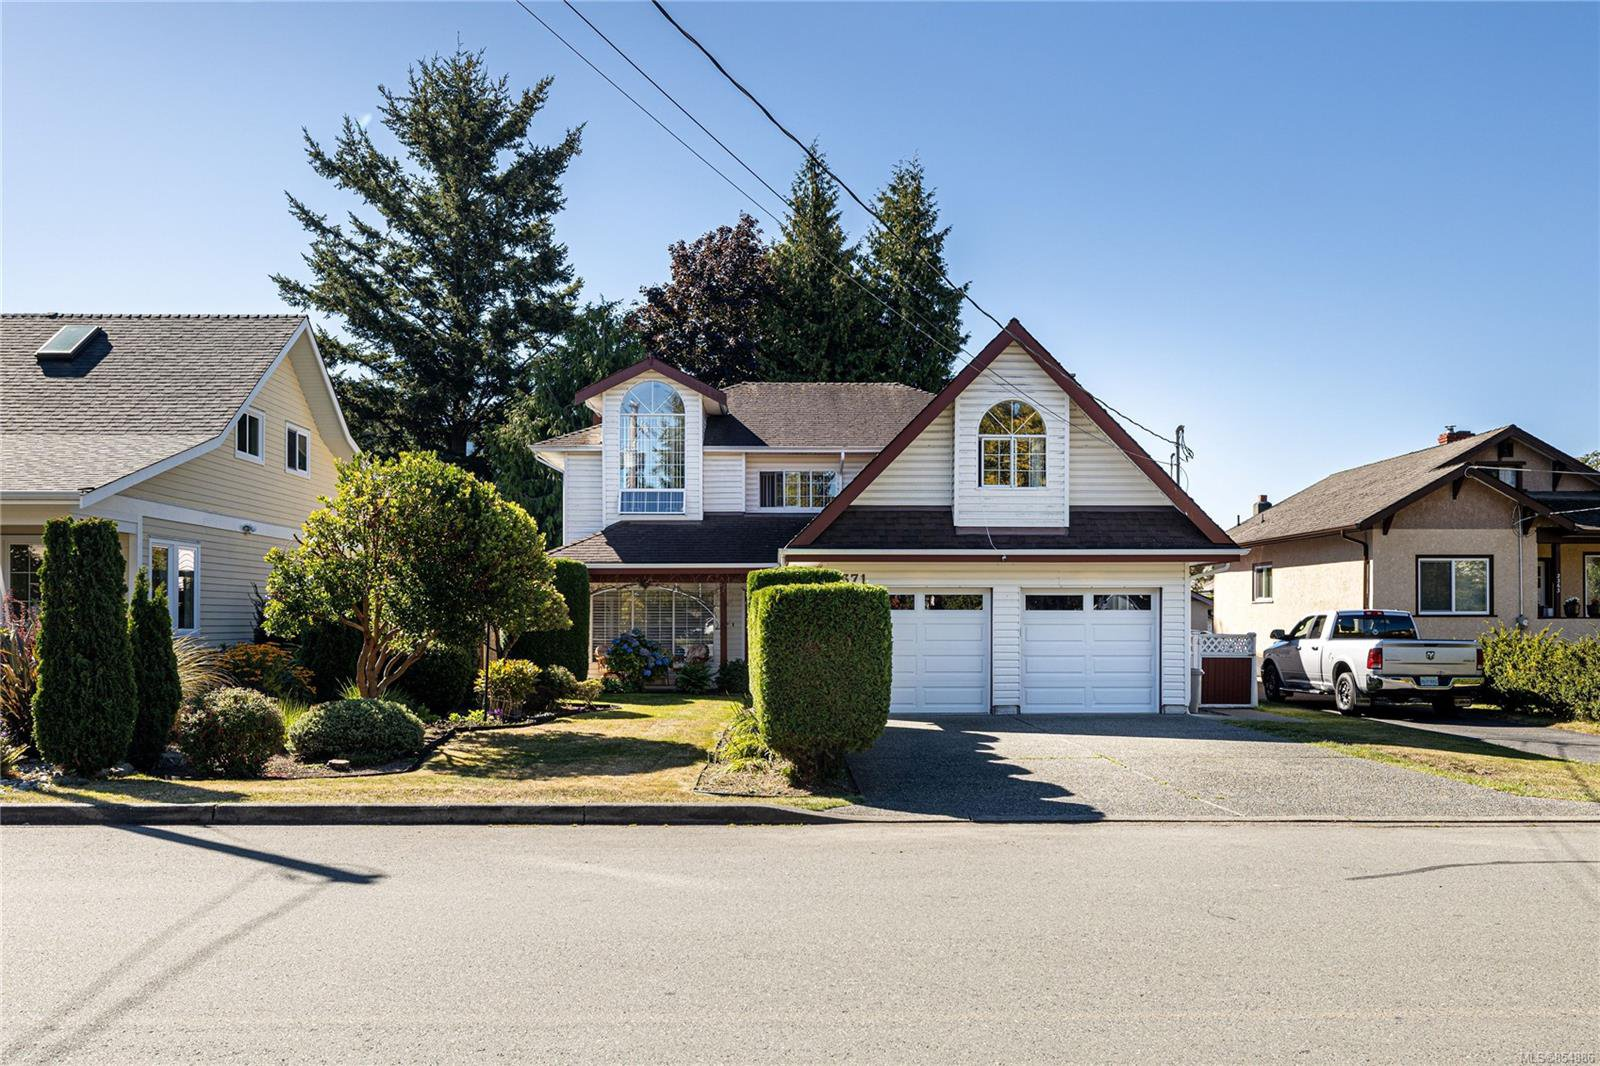 Main Photo: 2371 Brethour Ave in : Si Sidney North-East House for sale (Sidney)  : MLS®# 854886